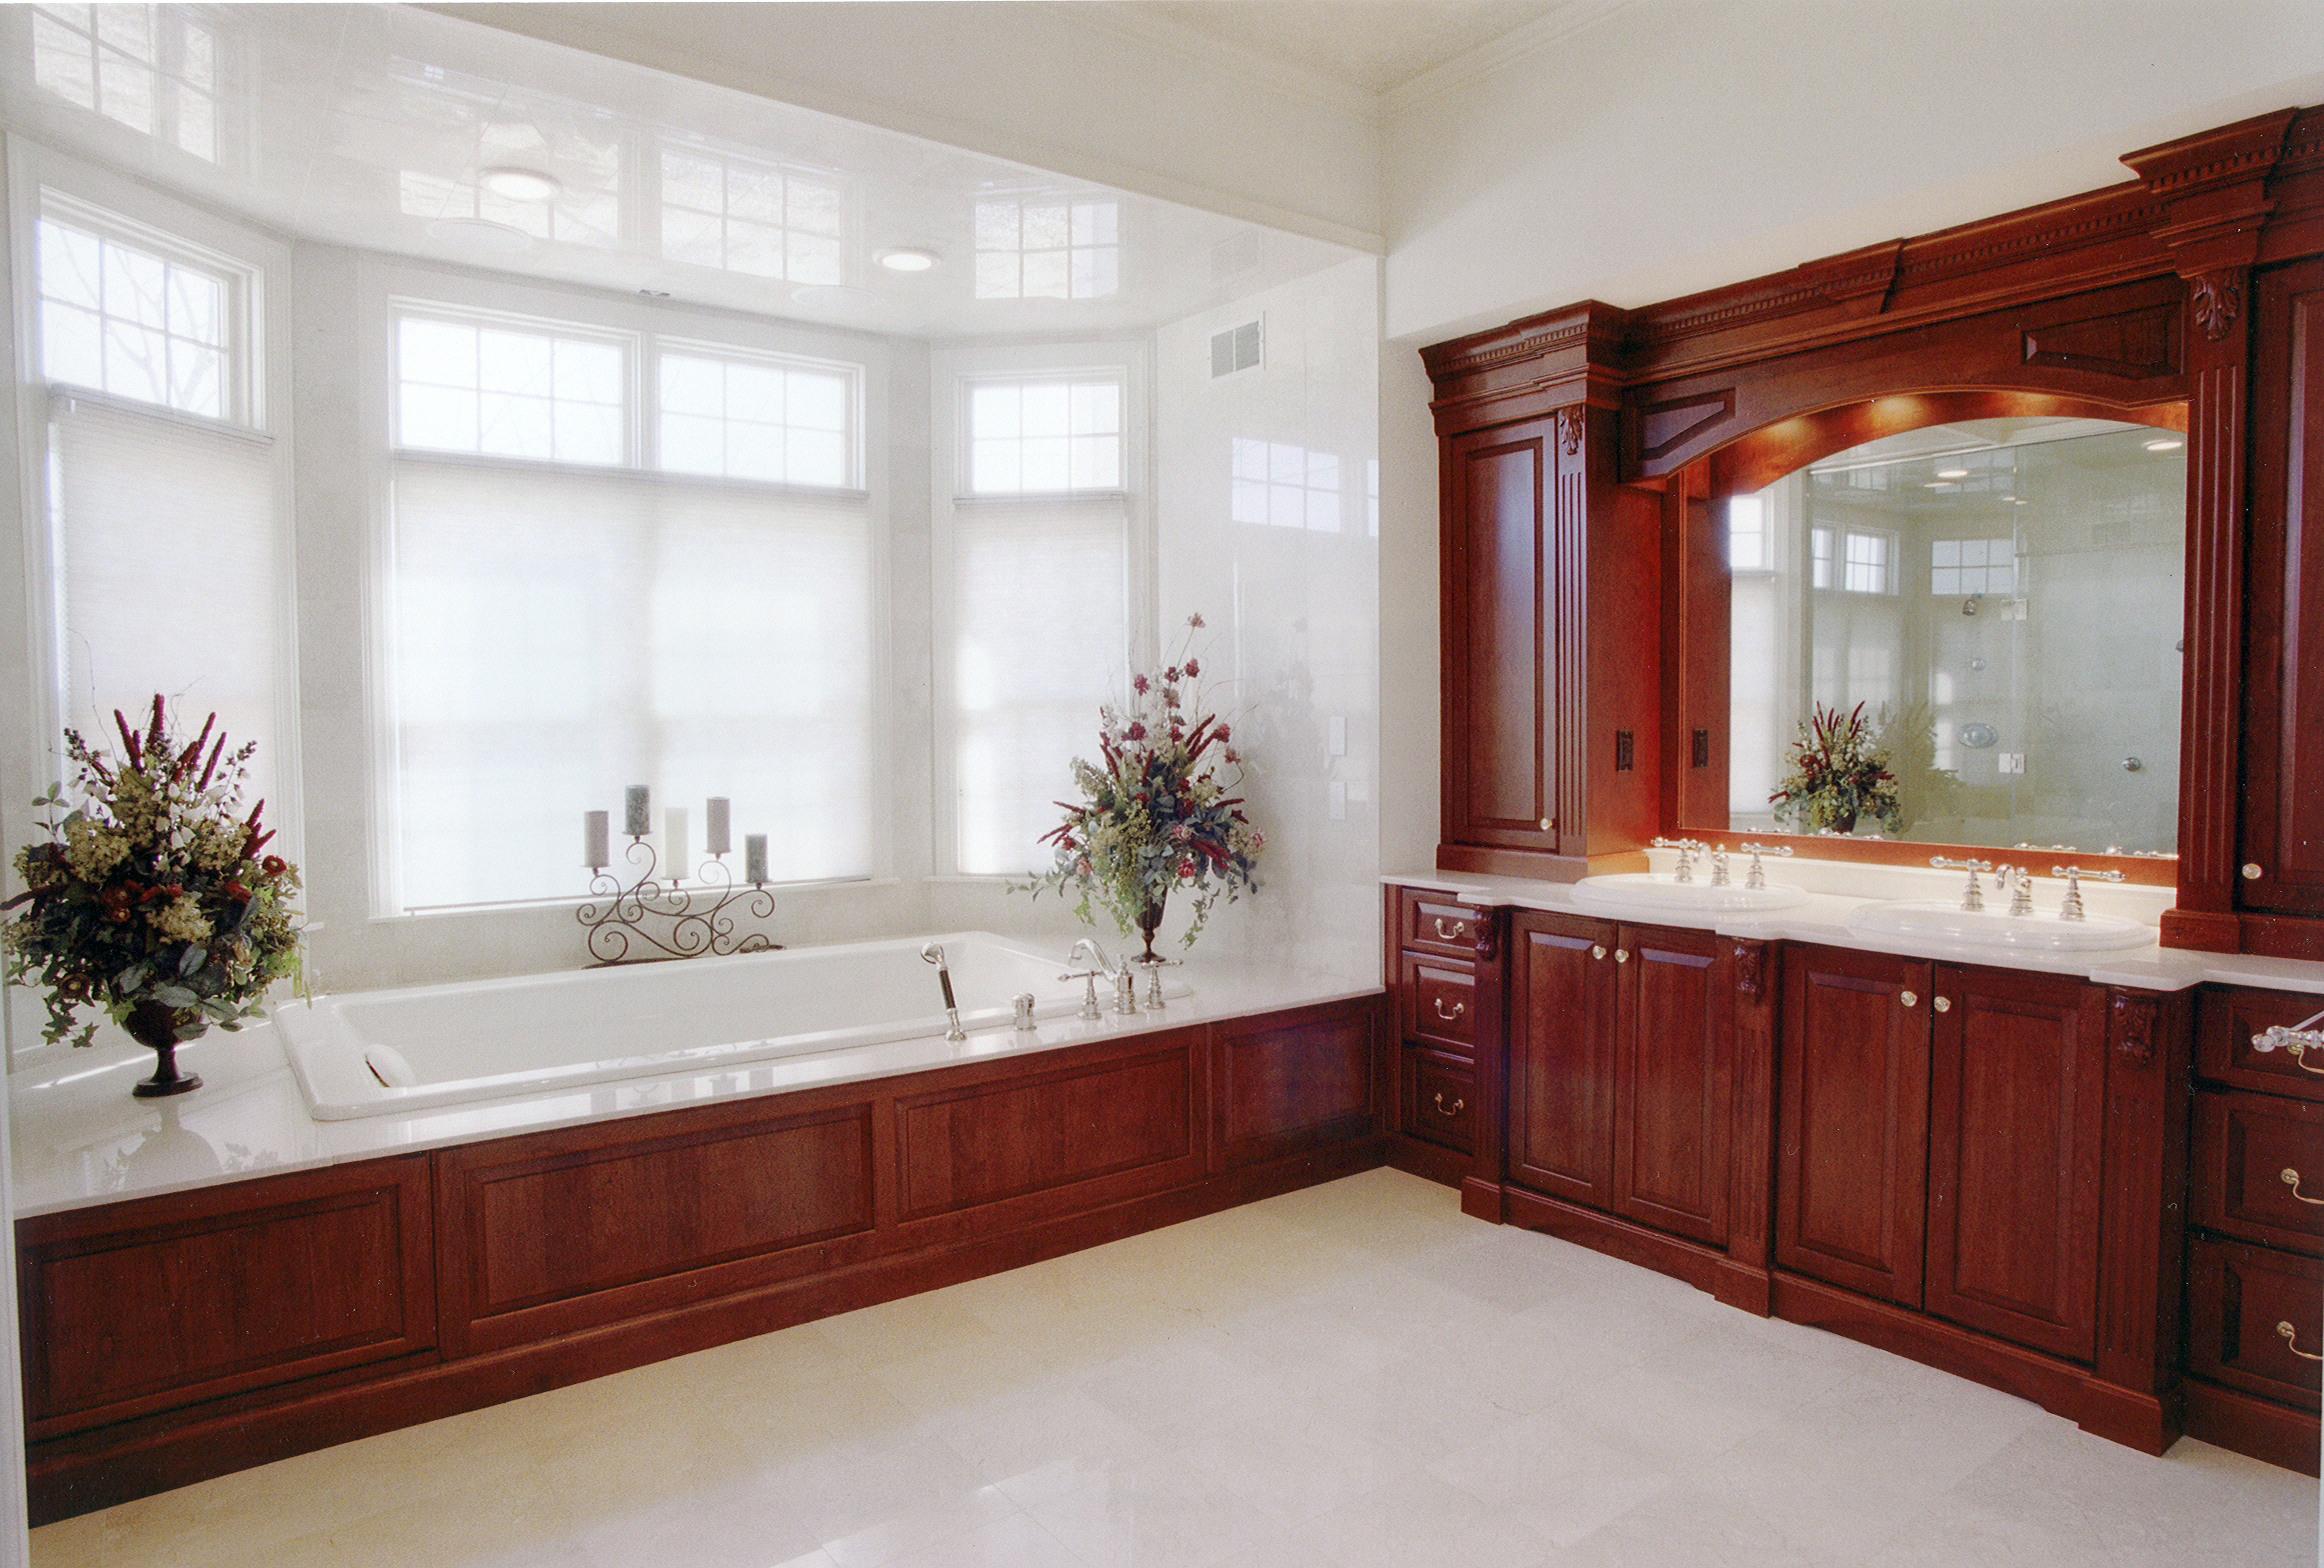 Platinum designs llc custom bathroom cabinetry master for Custom bathroom ideas